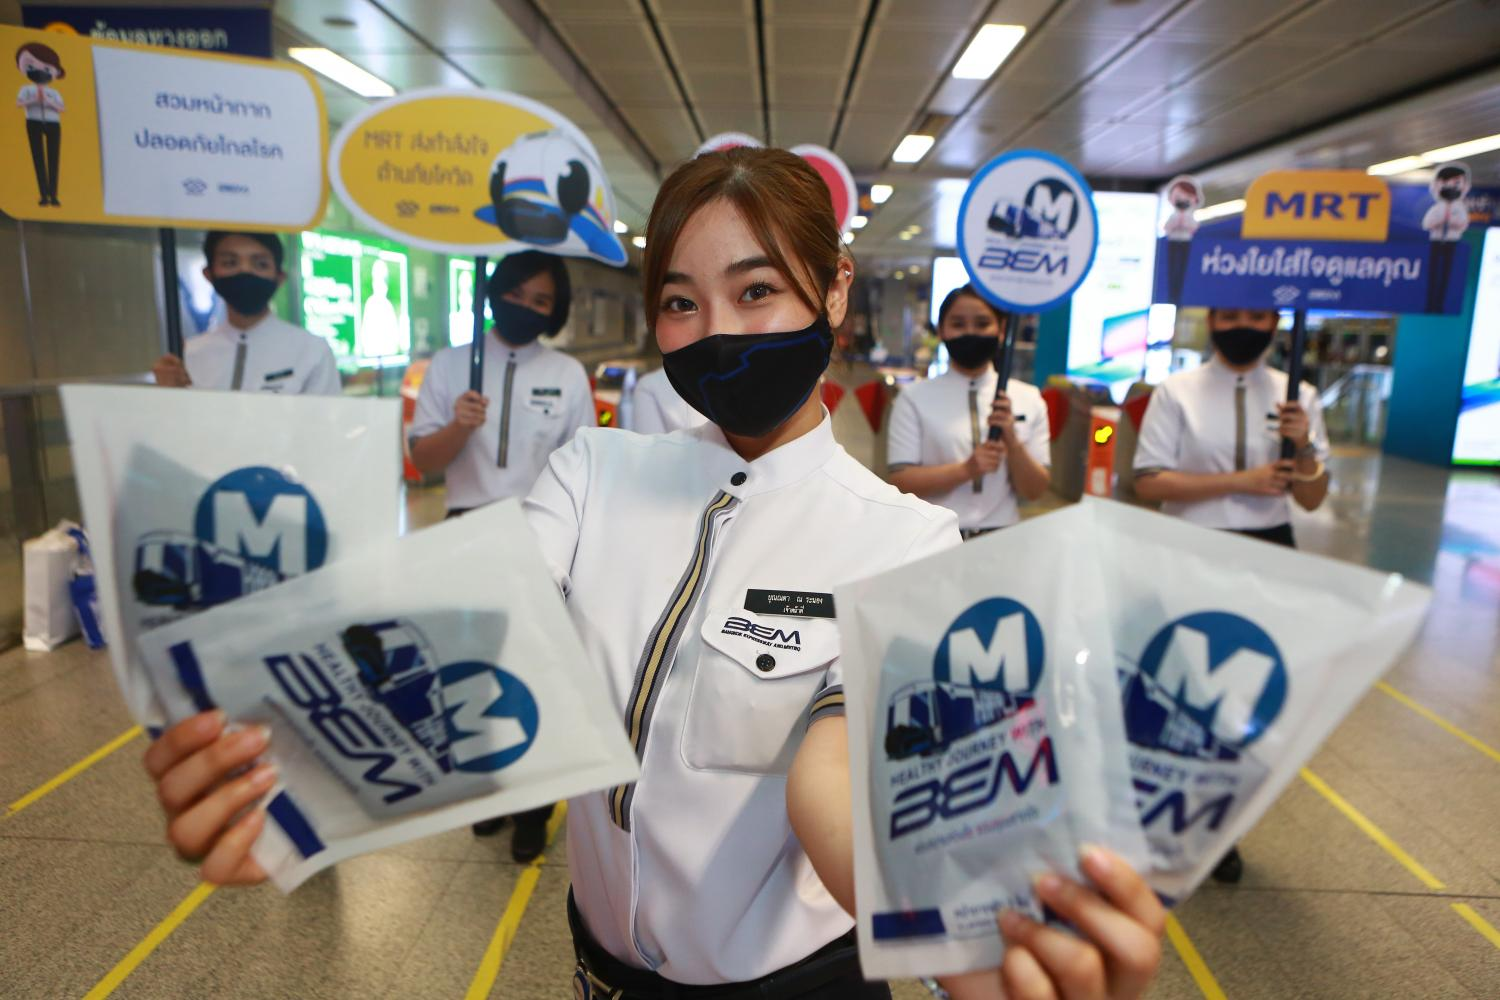 A group of BEM employees showcase the company's MRT safety campaign aimed at educating the public about Covid-19.(Photo by Somchai Poomlard)